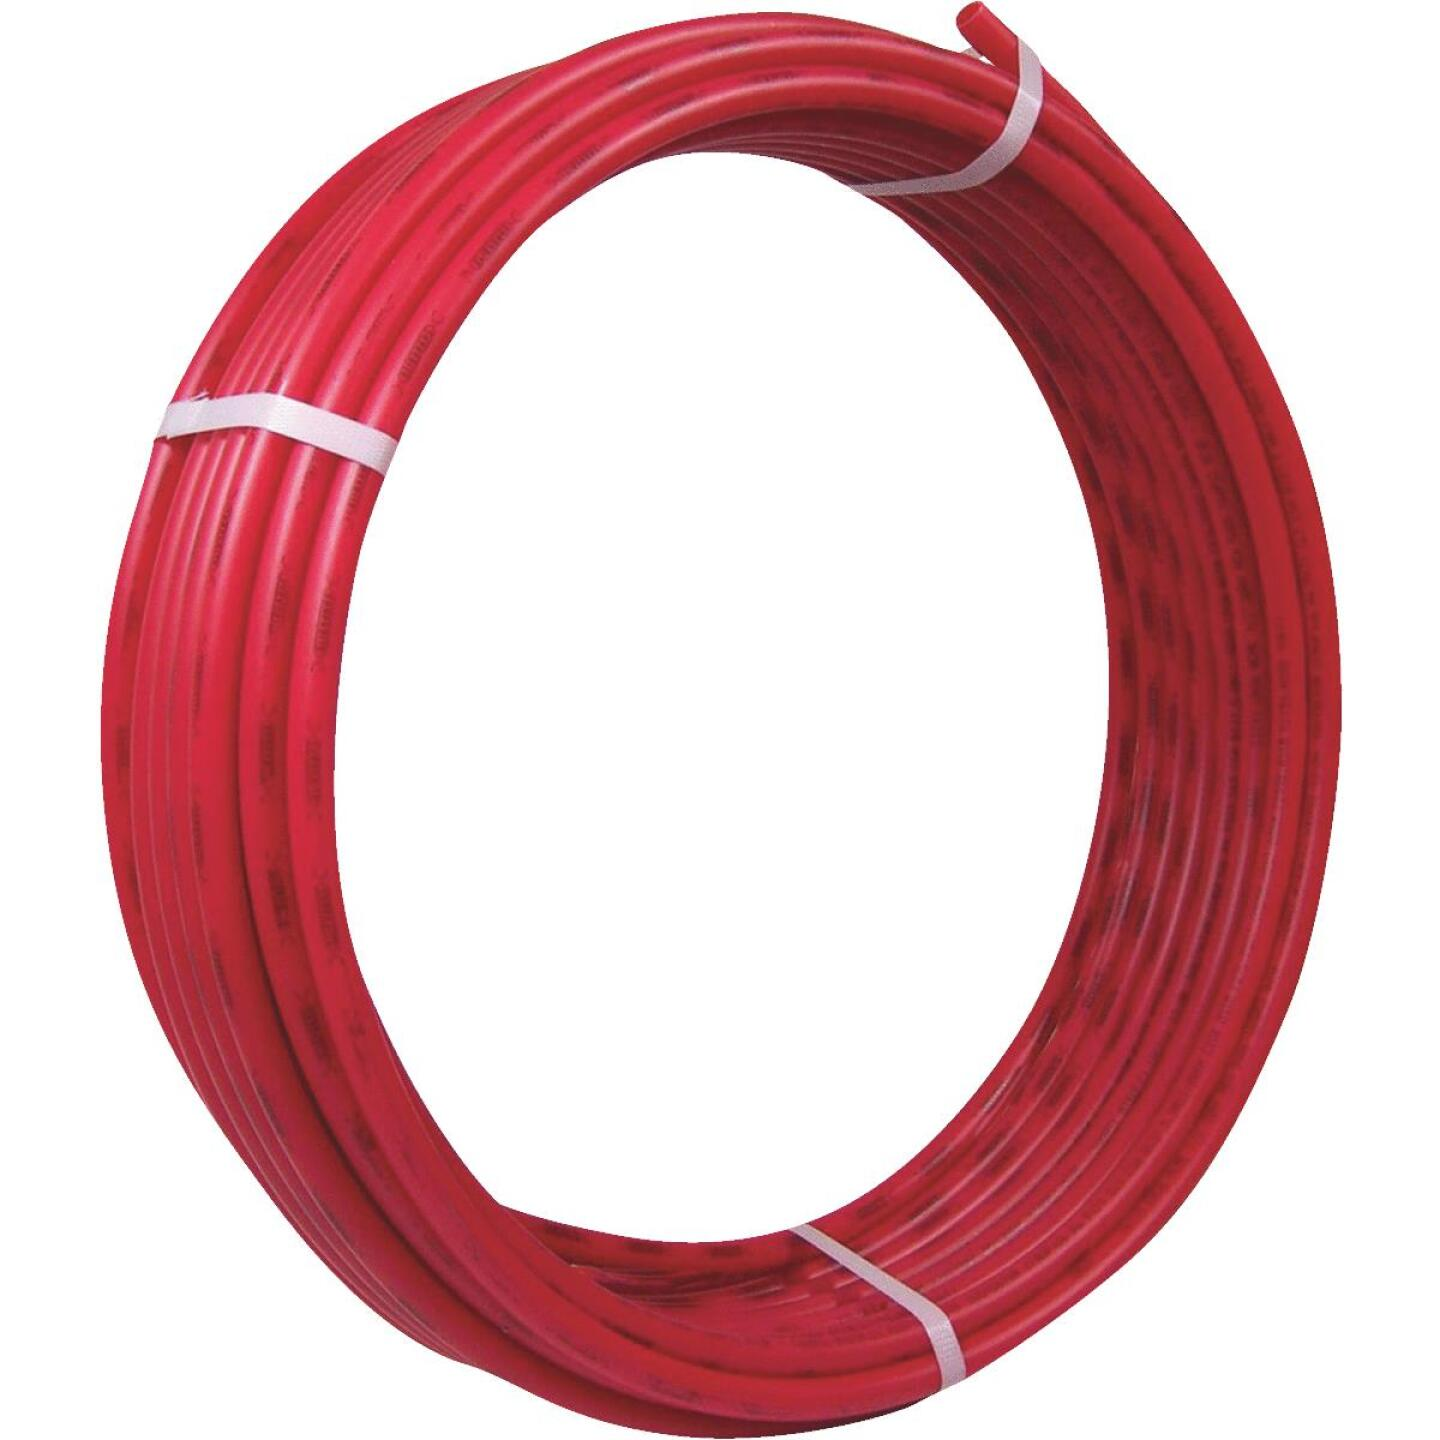 SharkBite 1/2 In. x 300 Ft. Red PEX Pipe Type B Coil Image 1